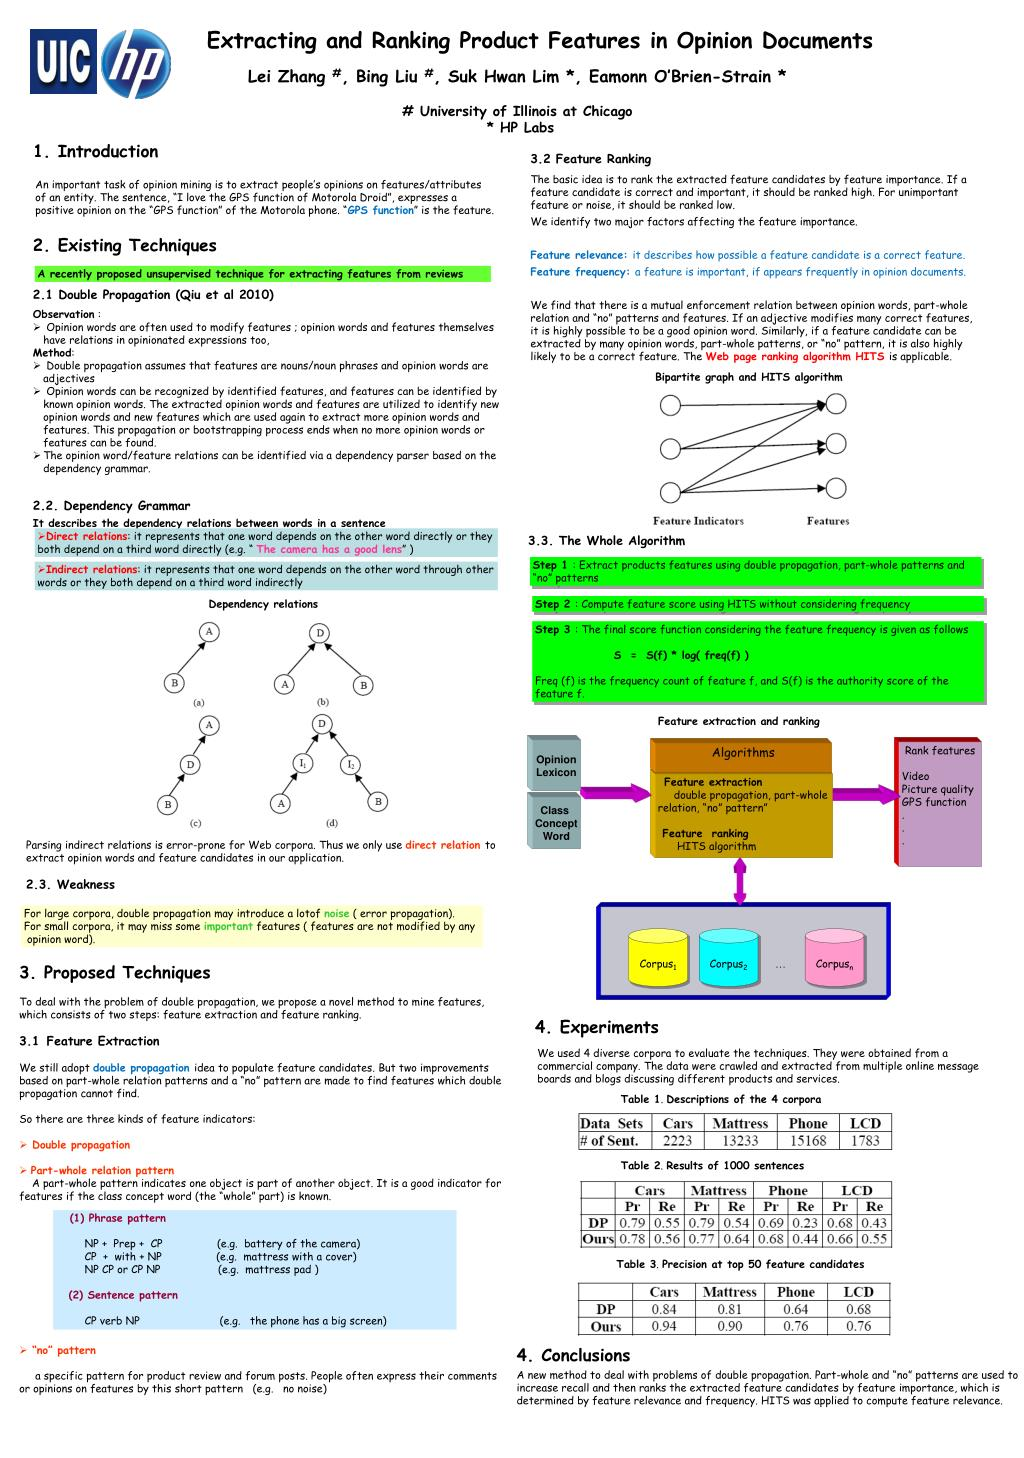 PPT - Extracting and Ranking Product Features in Opinion Documents